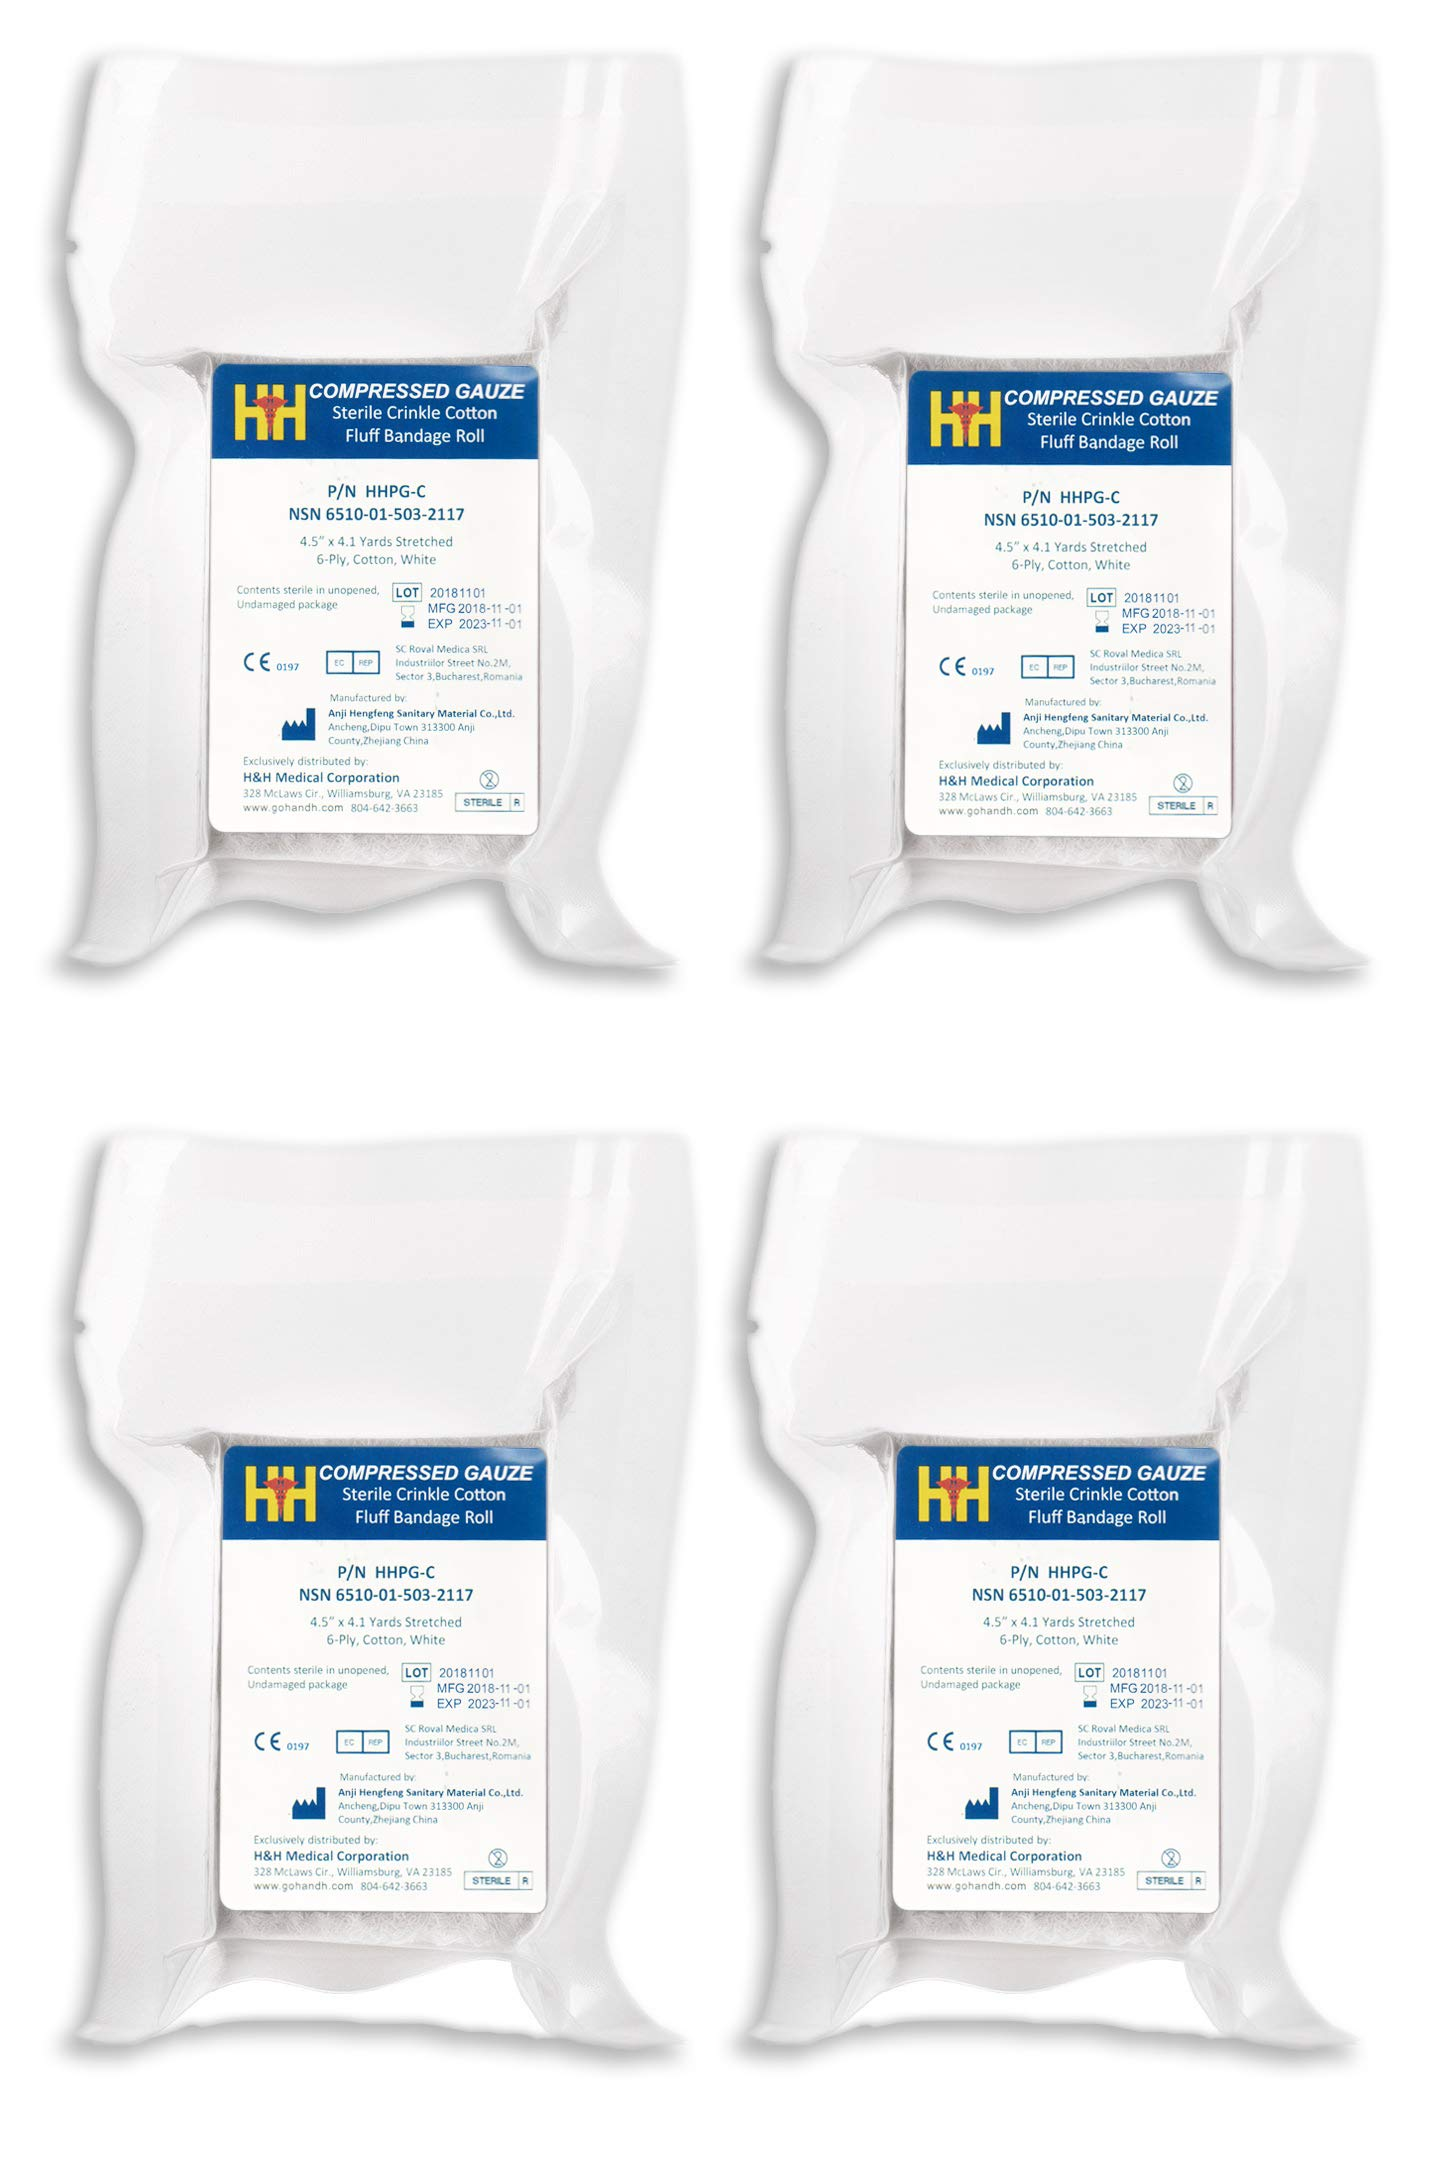 H&H Compressed Sterile Gauze HHPG-C, 4.5'' x 4.1 Yards, 6-Ply White Cotton, Essential First Aid and Stop The Bleed Kit Supply for Home, Medical, and Tactical Use by H& H Compressed Gauze